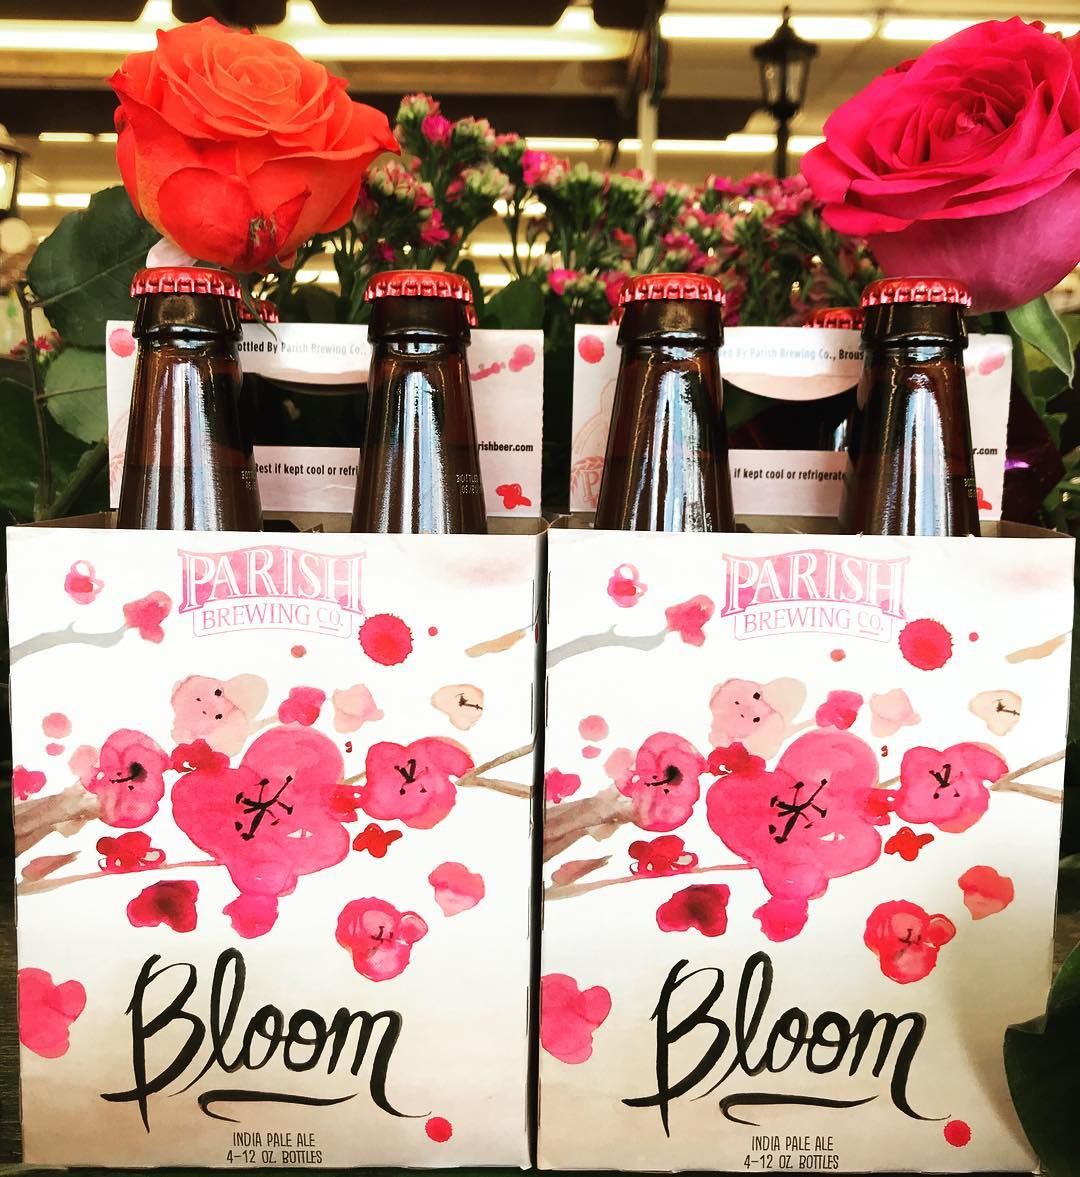 Parishbrewingco Bloom Is Available Now At Our Mid City Location Perfect For The Hottest Louisiana Weather